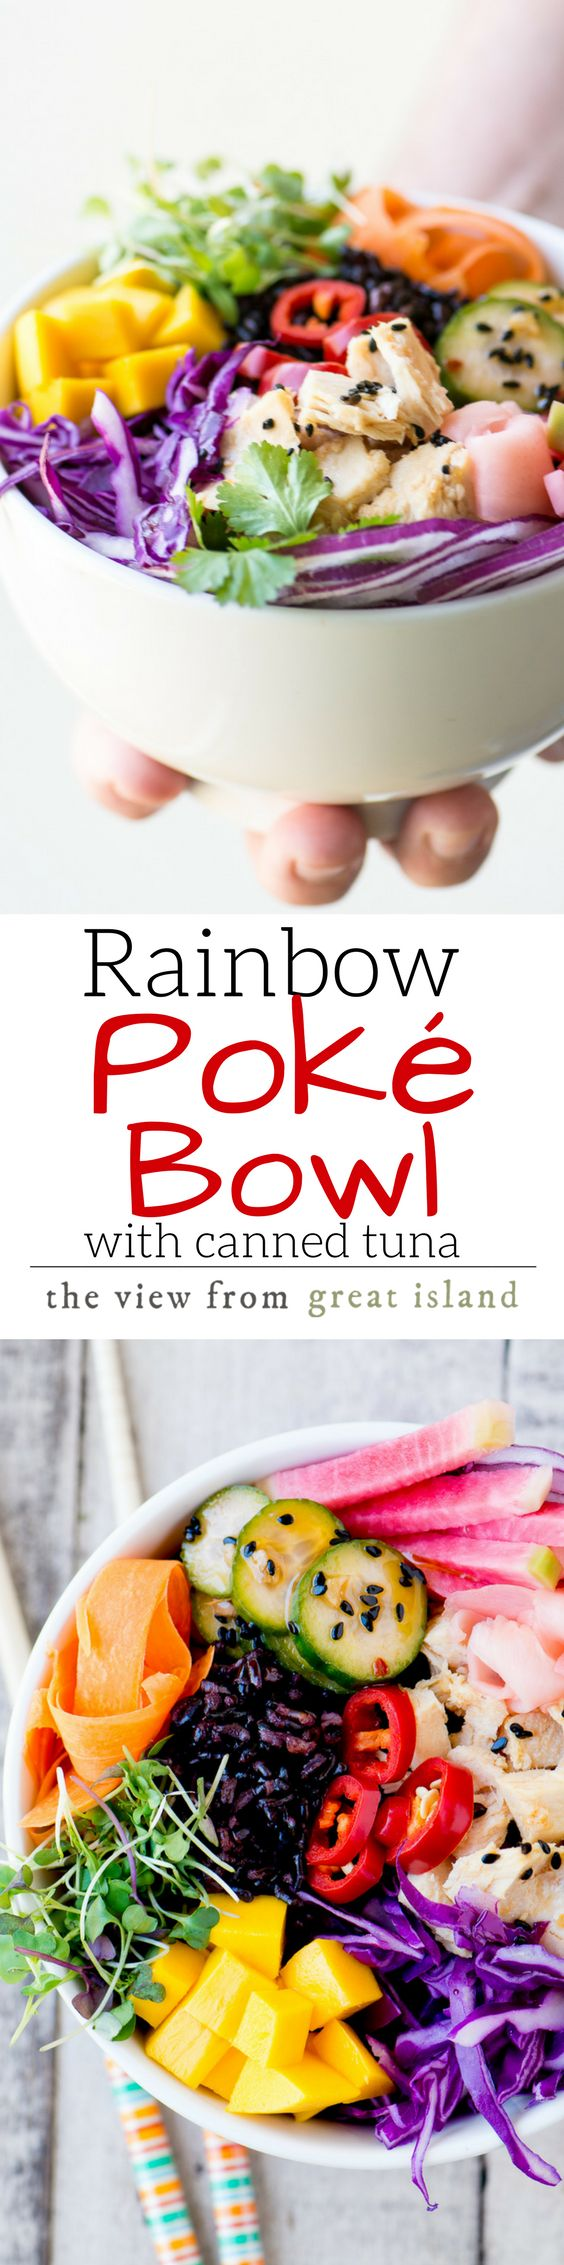 Rainbow Poke Bowl with canned tuna ~ you can have this colorful and healthy Hawaiian favorite any time, anywhere, without having to source sushi grade raw fish ~ it's a win win! |Genova tuna | Buddha bowls | Grain bowls | Black rice | Rice bowls | Hawaiian recipes | lunch | main course | paleo | gluten free |